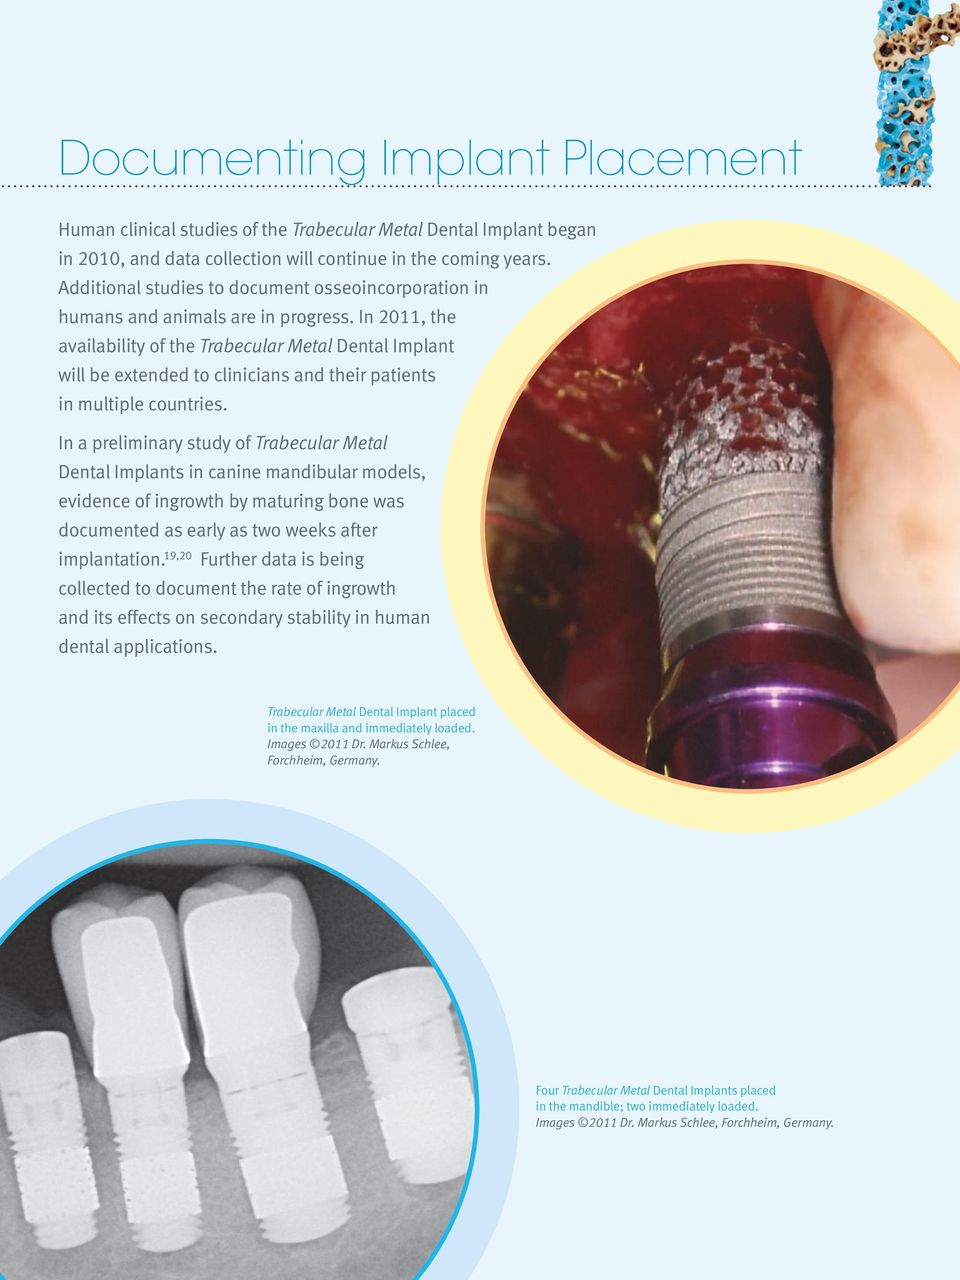 In 2011, the availability of the Trabecular Metal Dental Implant will be extended to clinicians and their patients in multiple countries.